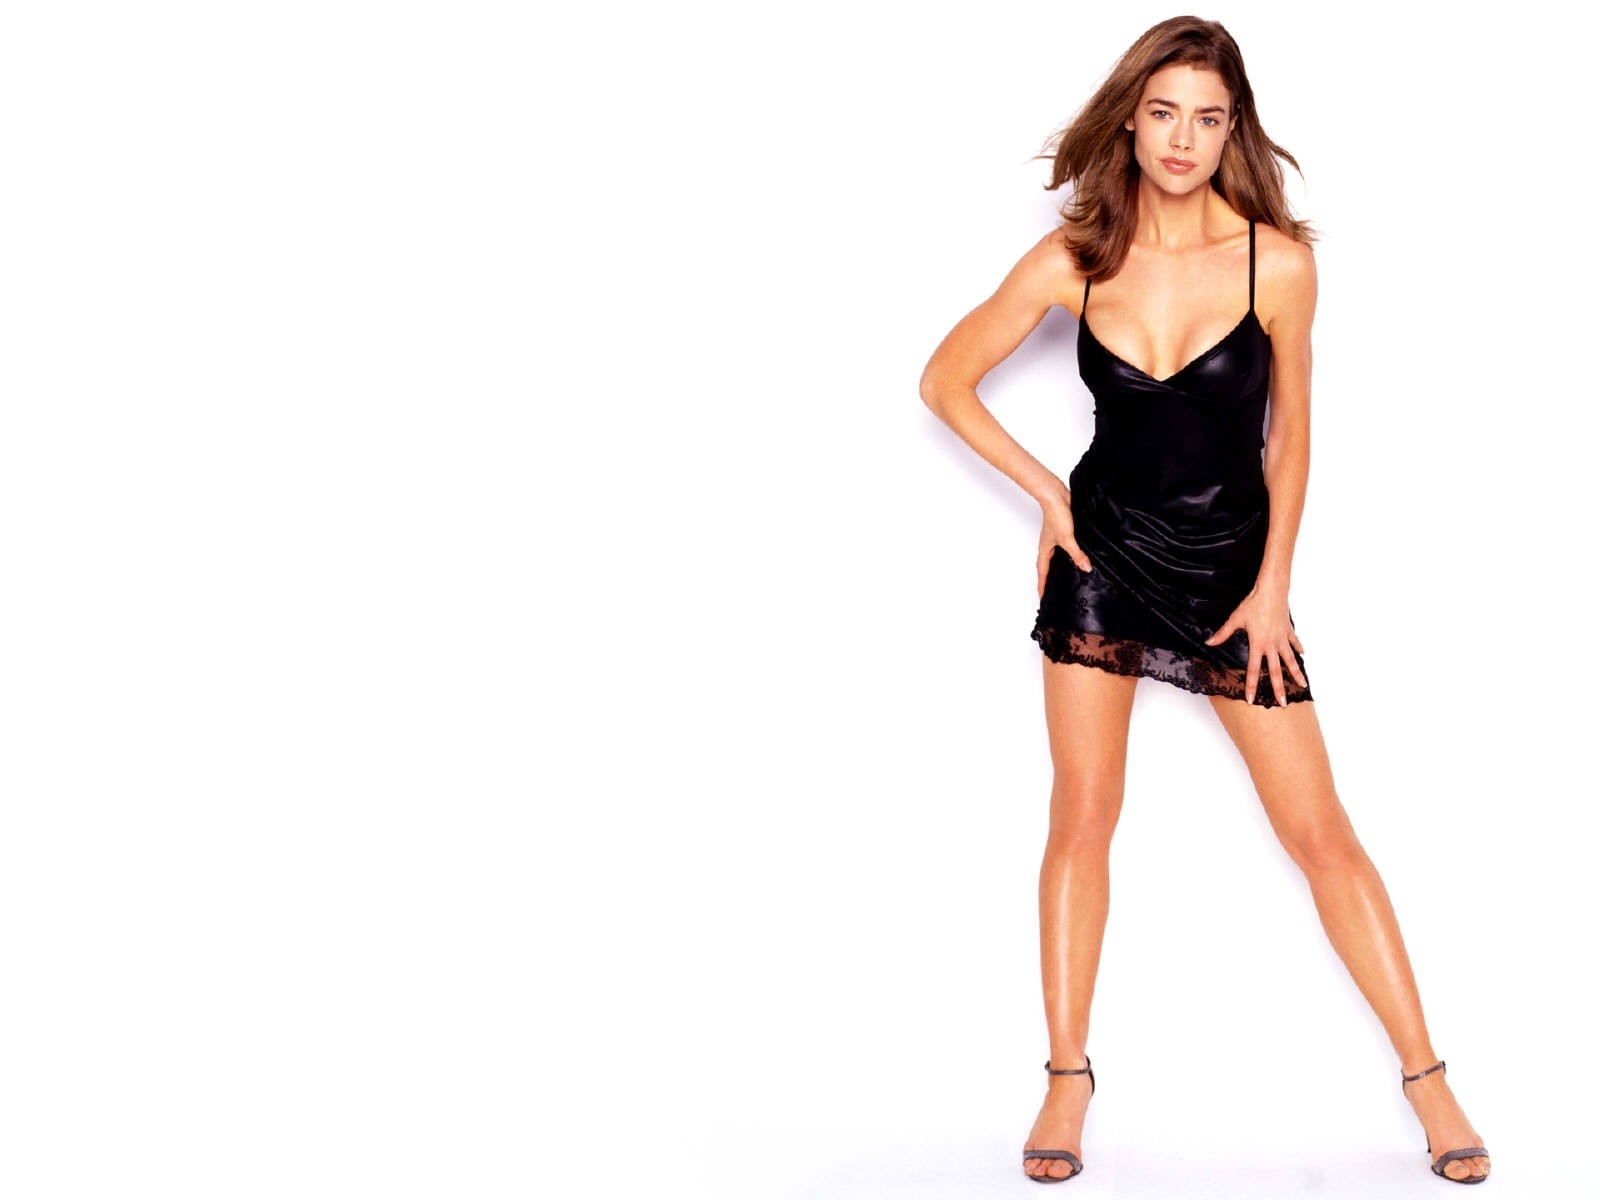 Wallpaper di Denise Richards - 50